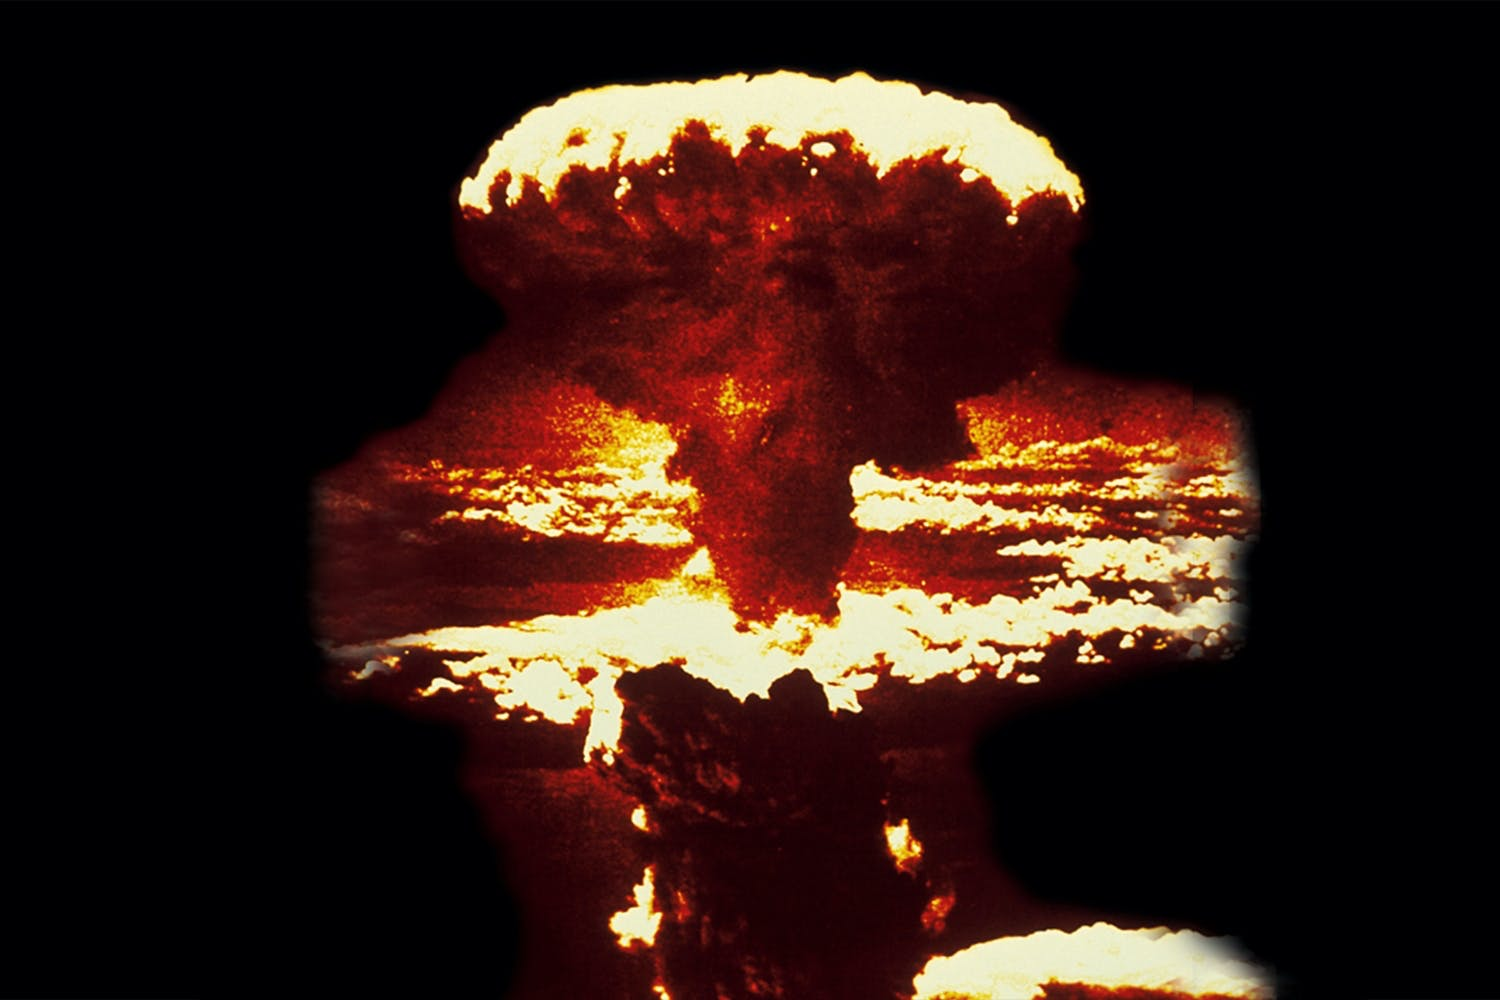 a-bomb exploding